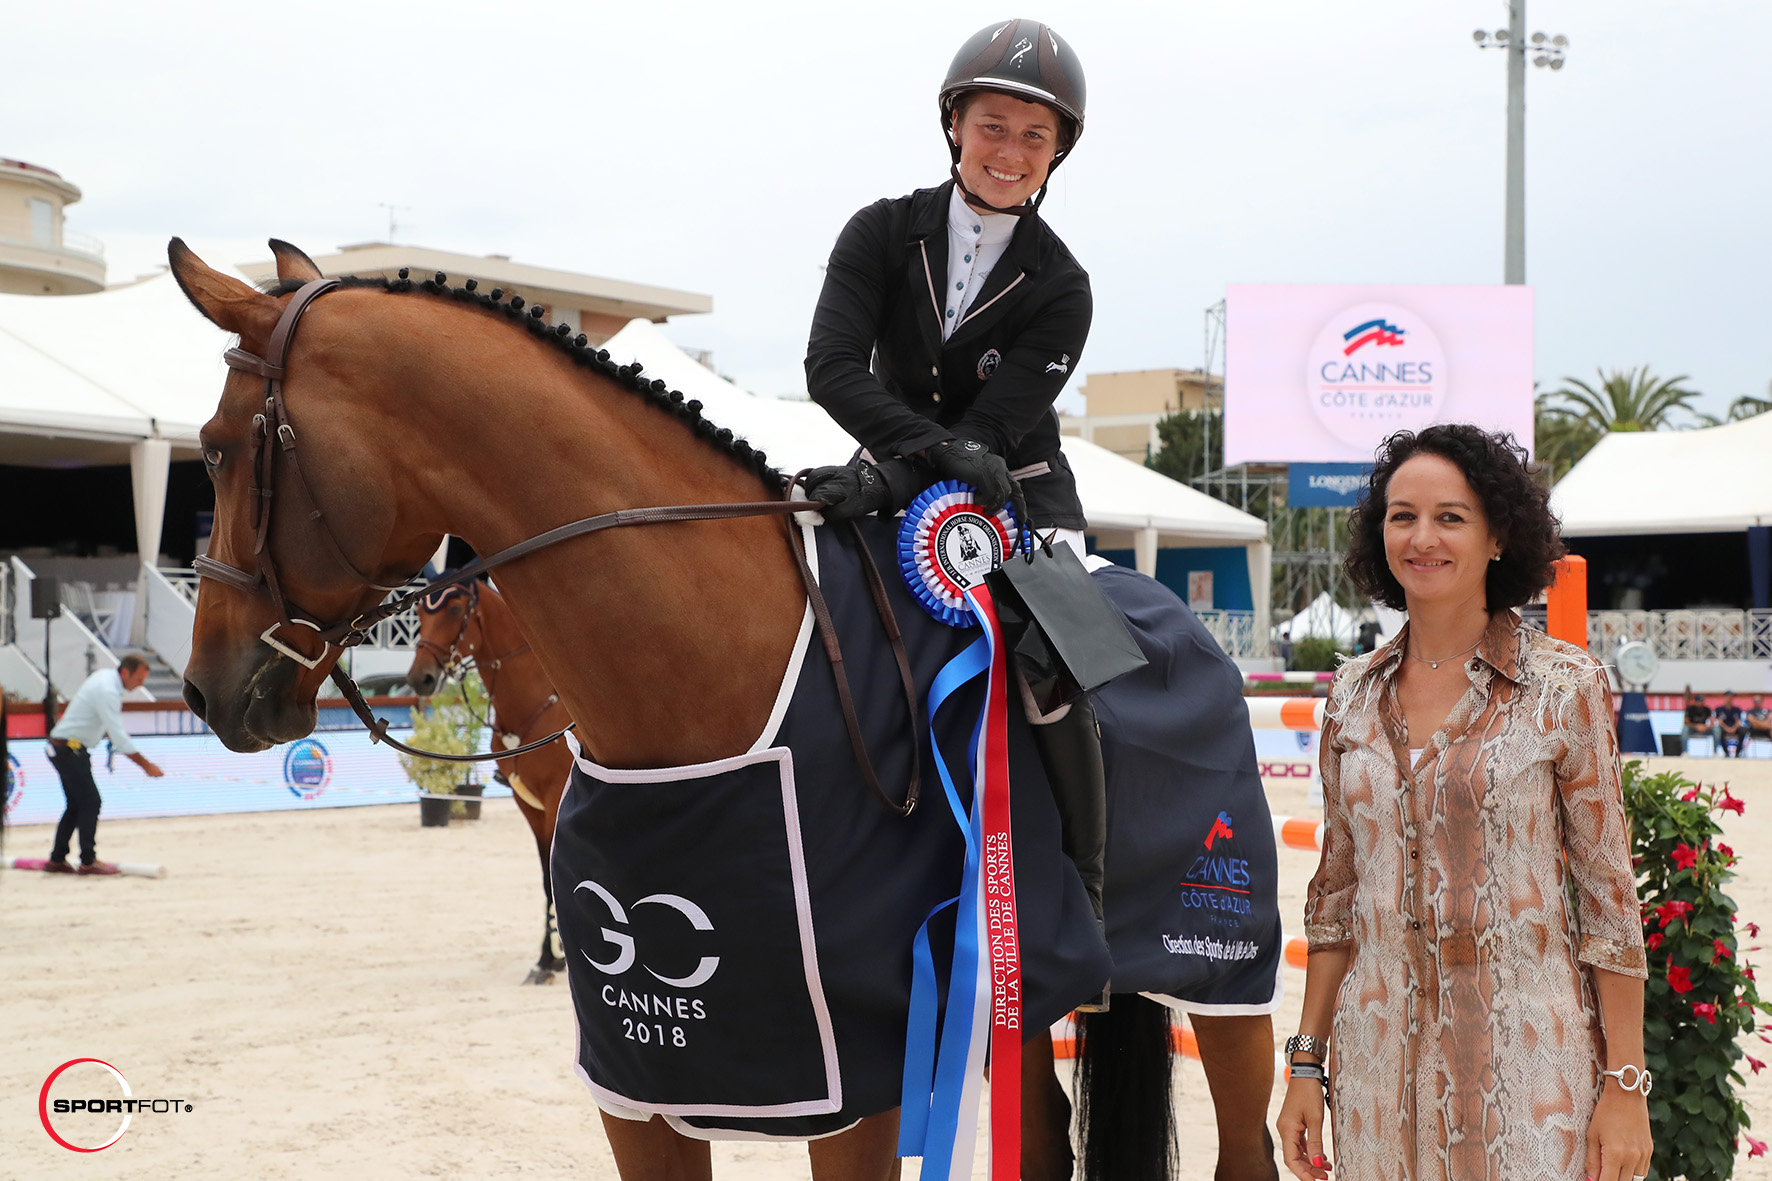 CSI1_Prix-Direction-des-Sports-de-la-Ville-de-Cannes_1m35_Sandrine-Berger (2)